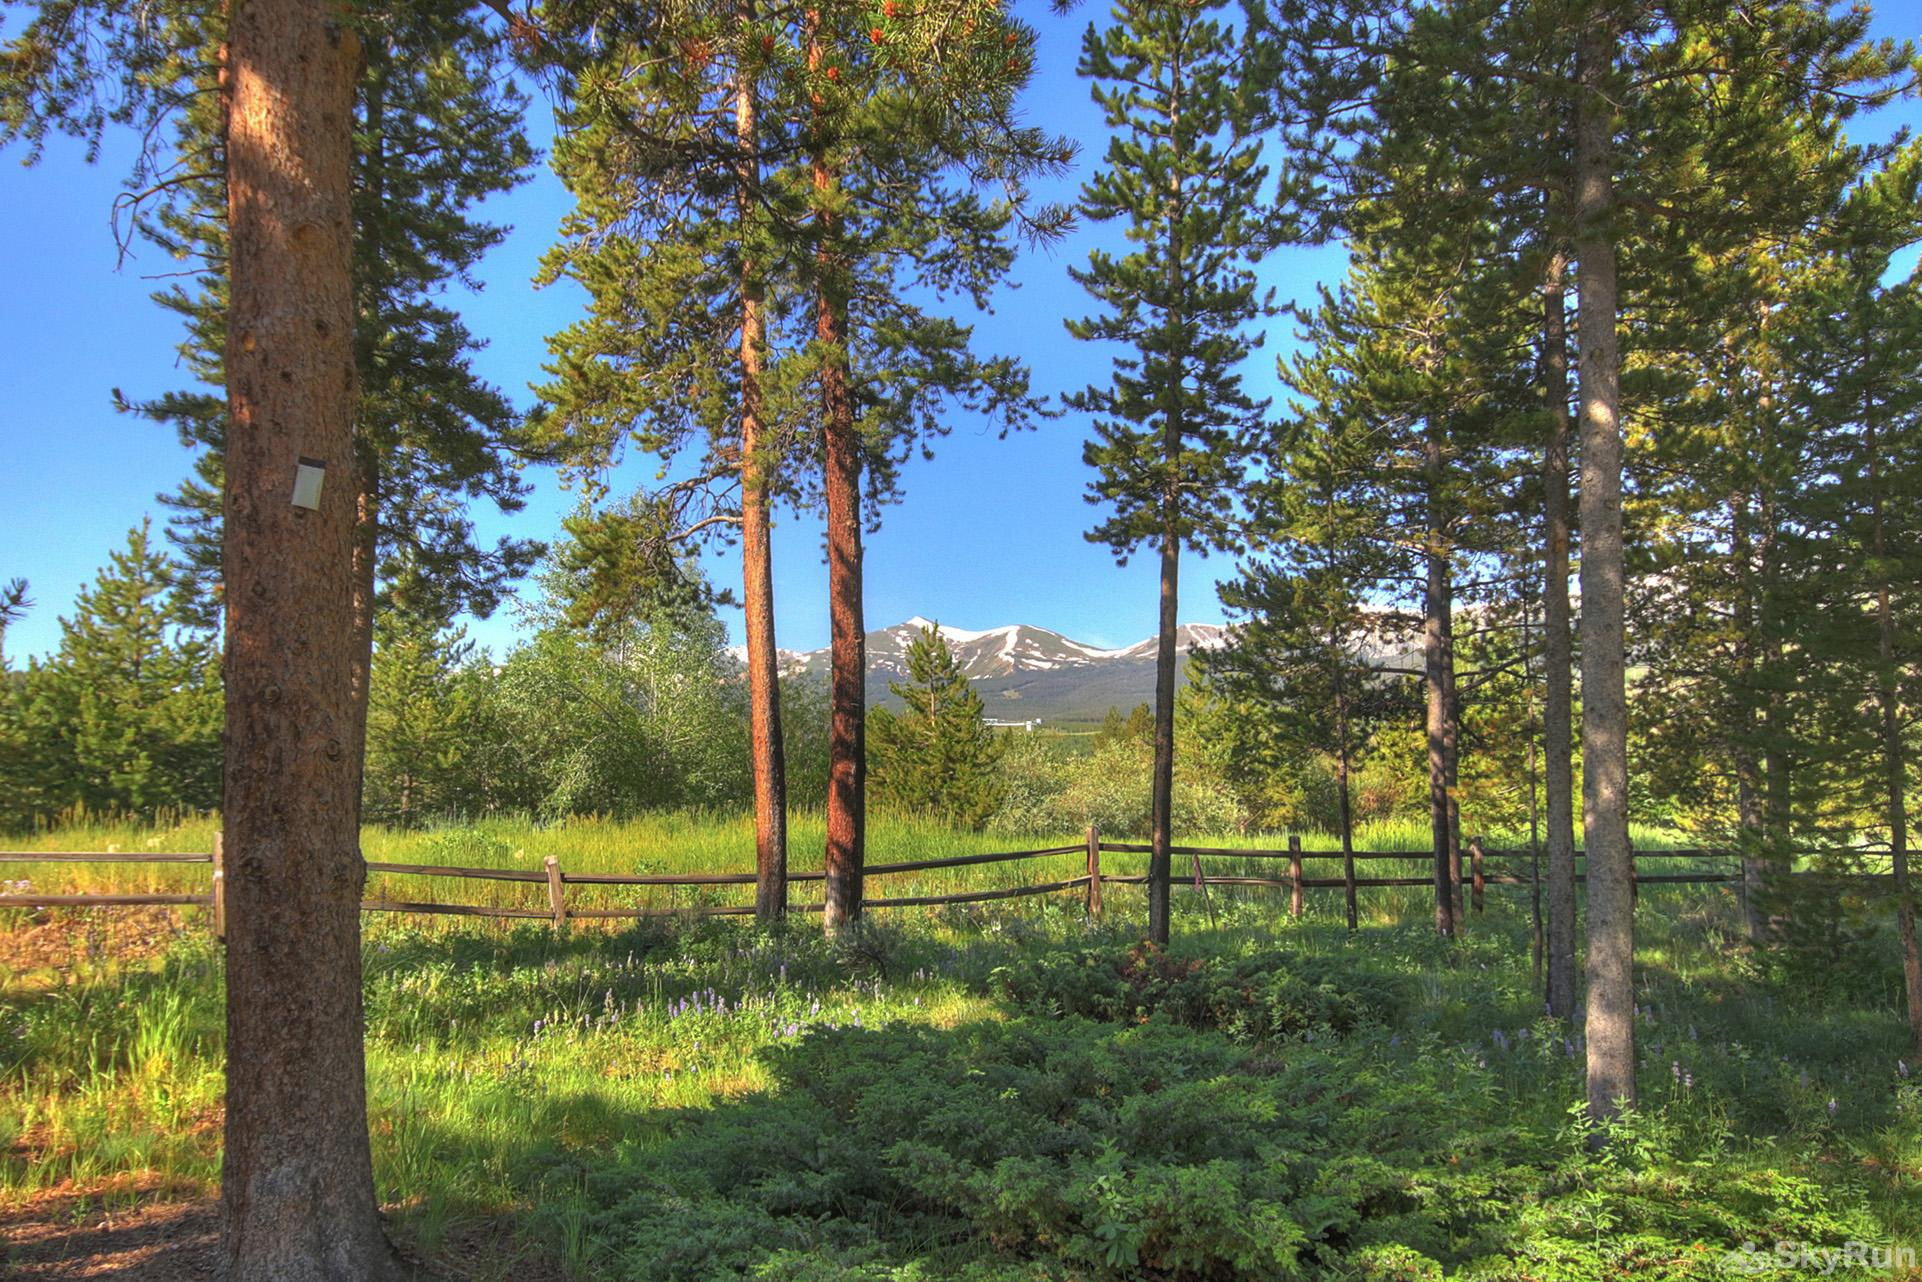 Marksberry Lodge Enjoy fresh air and scenic views